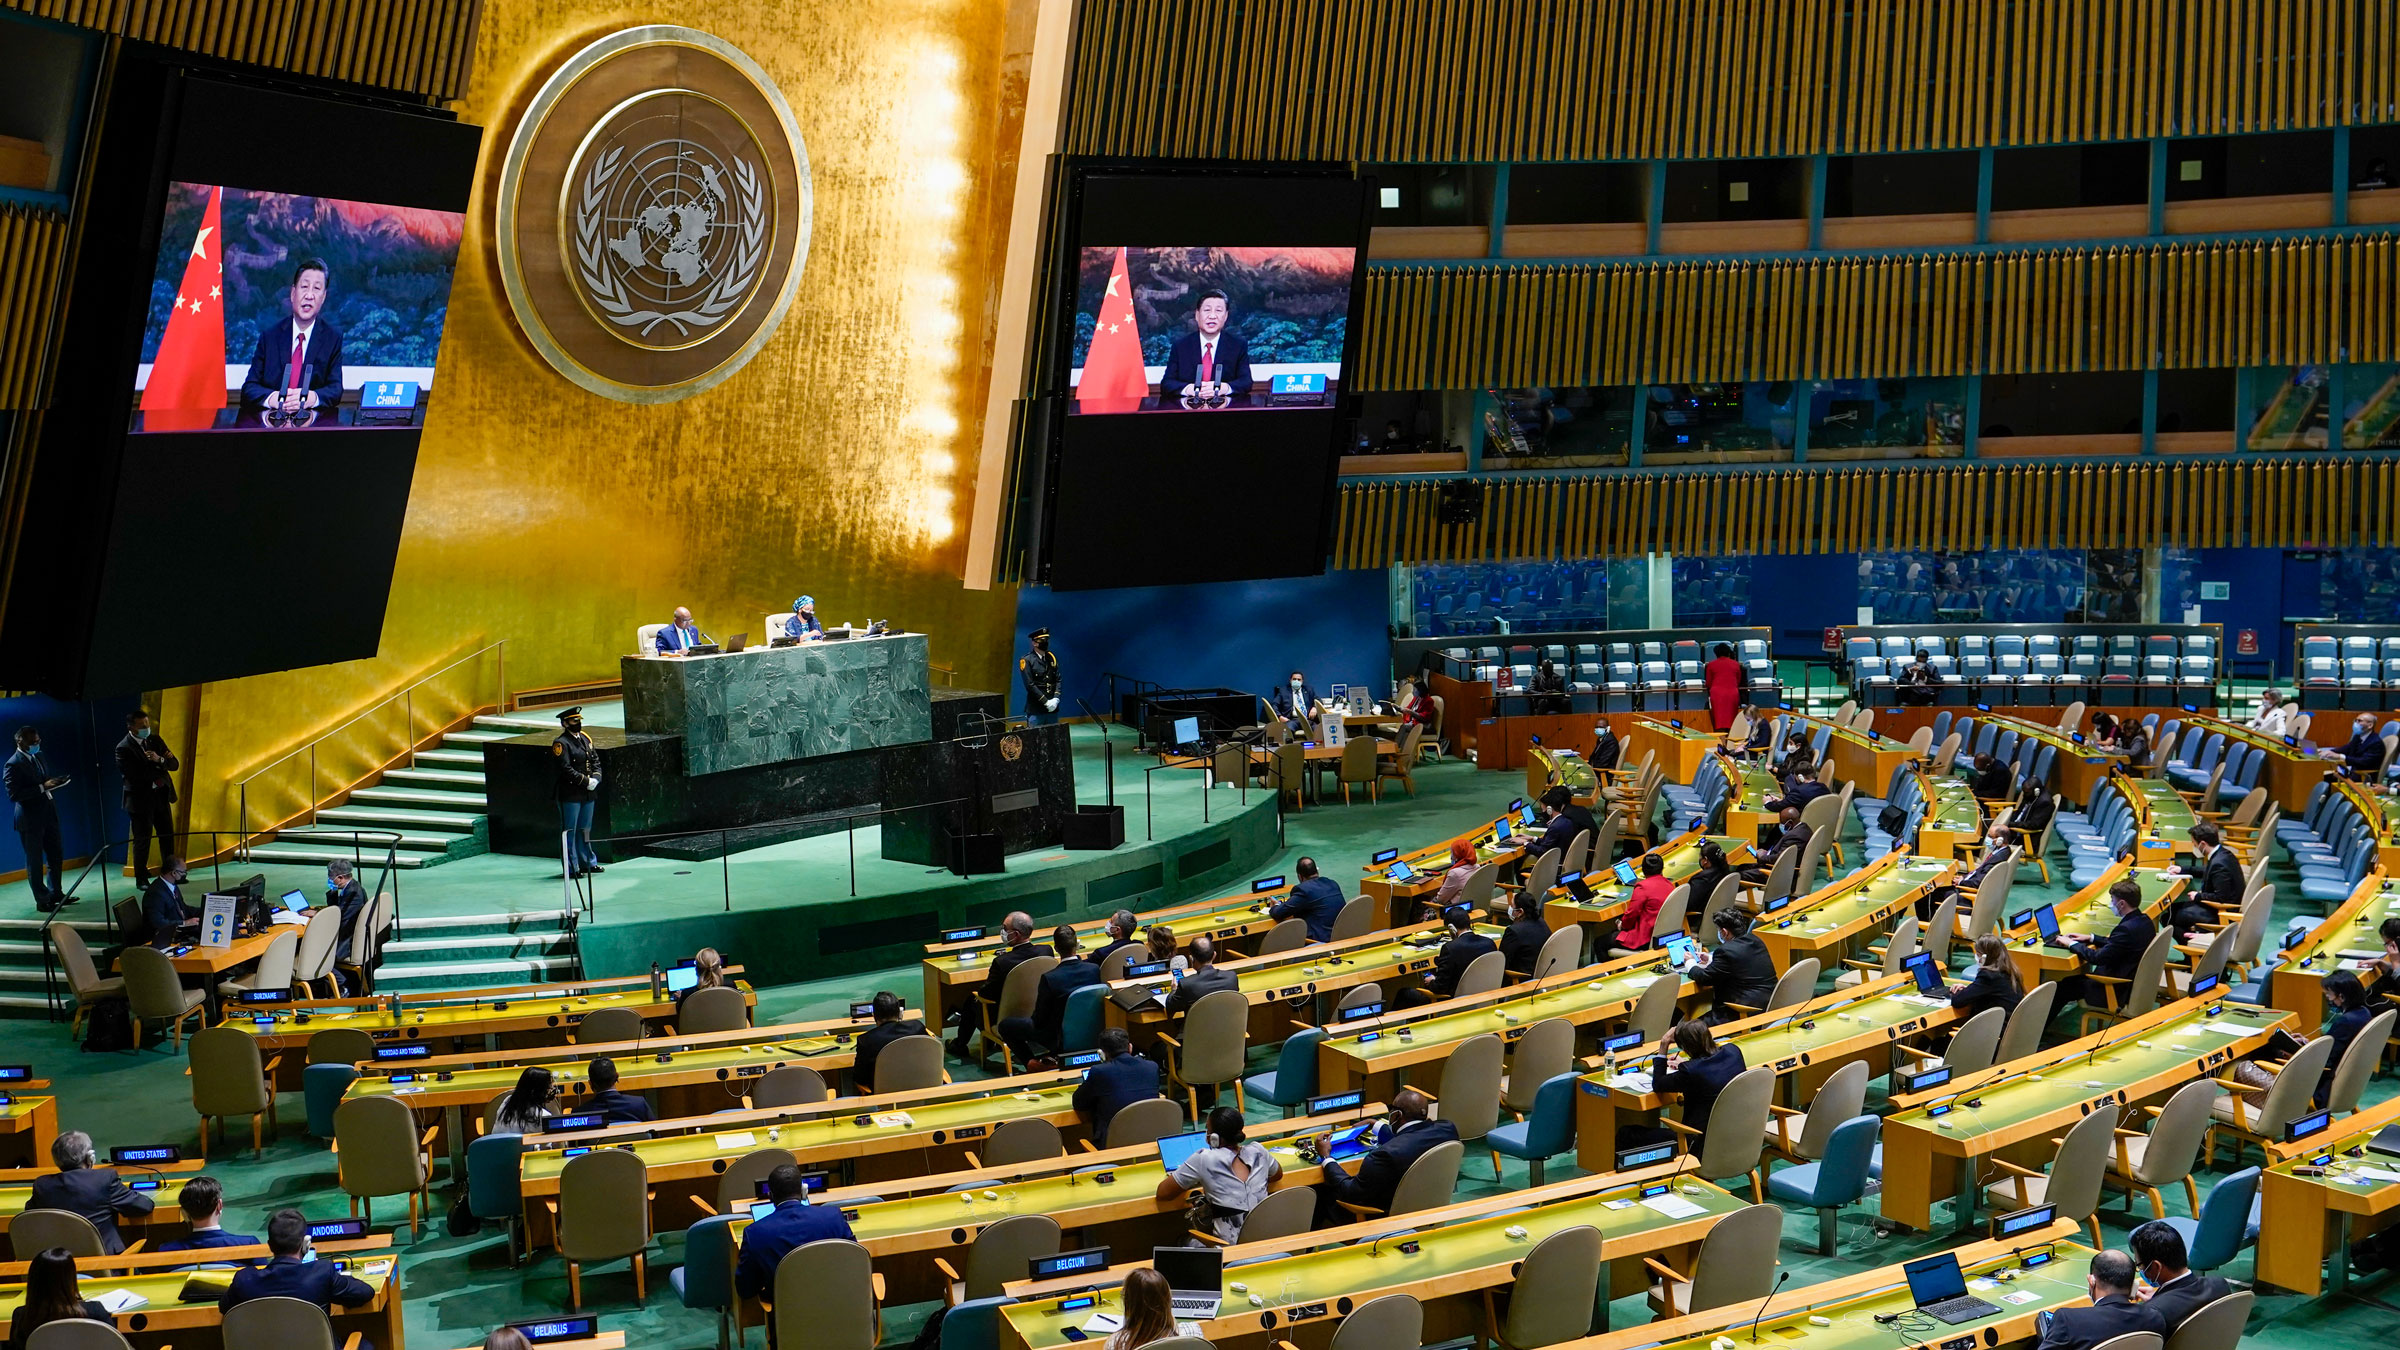 Chinese President Xi Jinping is seen on a video screen as he addresses the General Assembly on Tuesday.